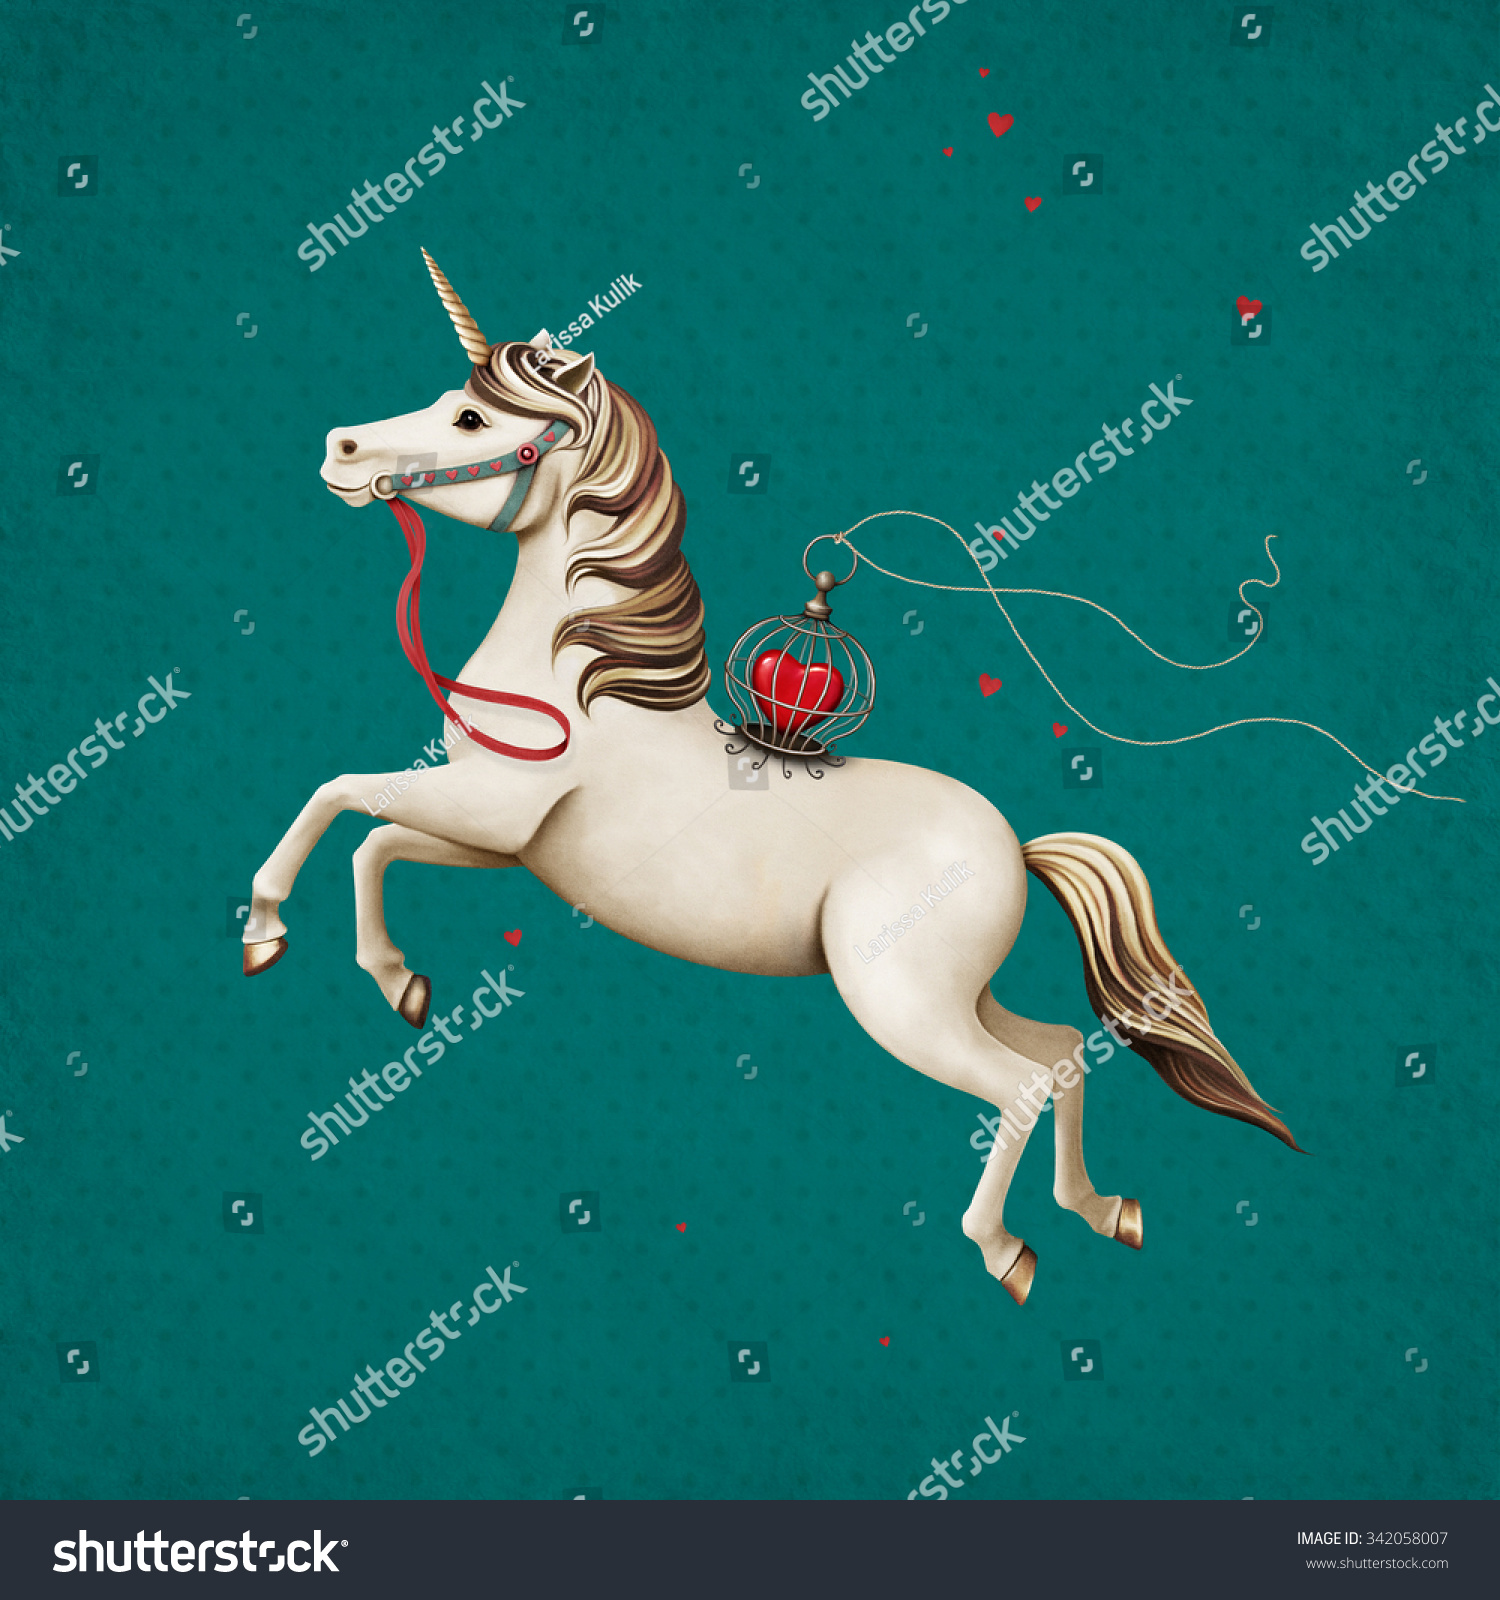 Postcard or poster with circus performance horse with heart in cage